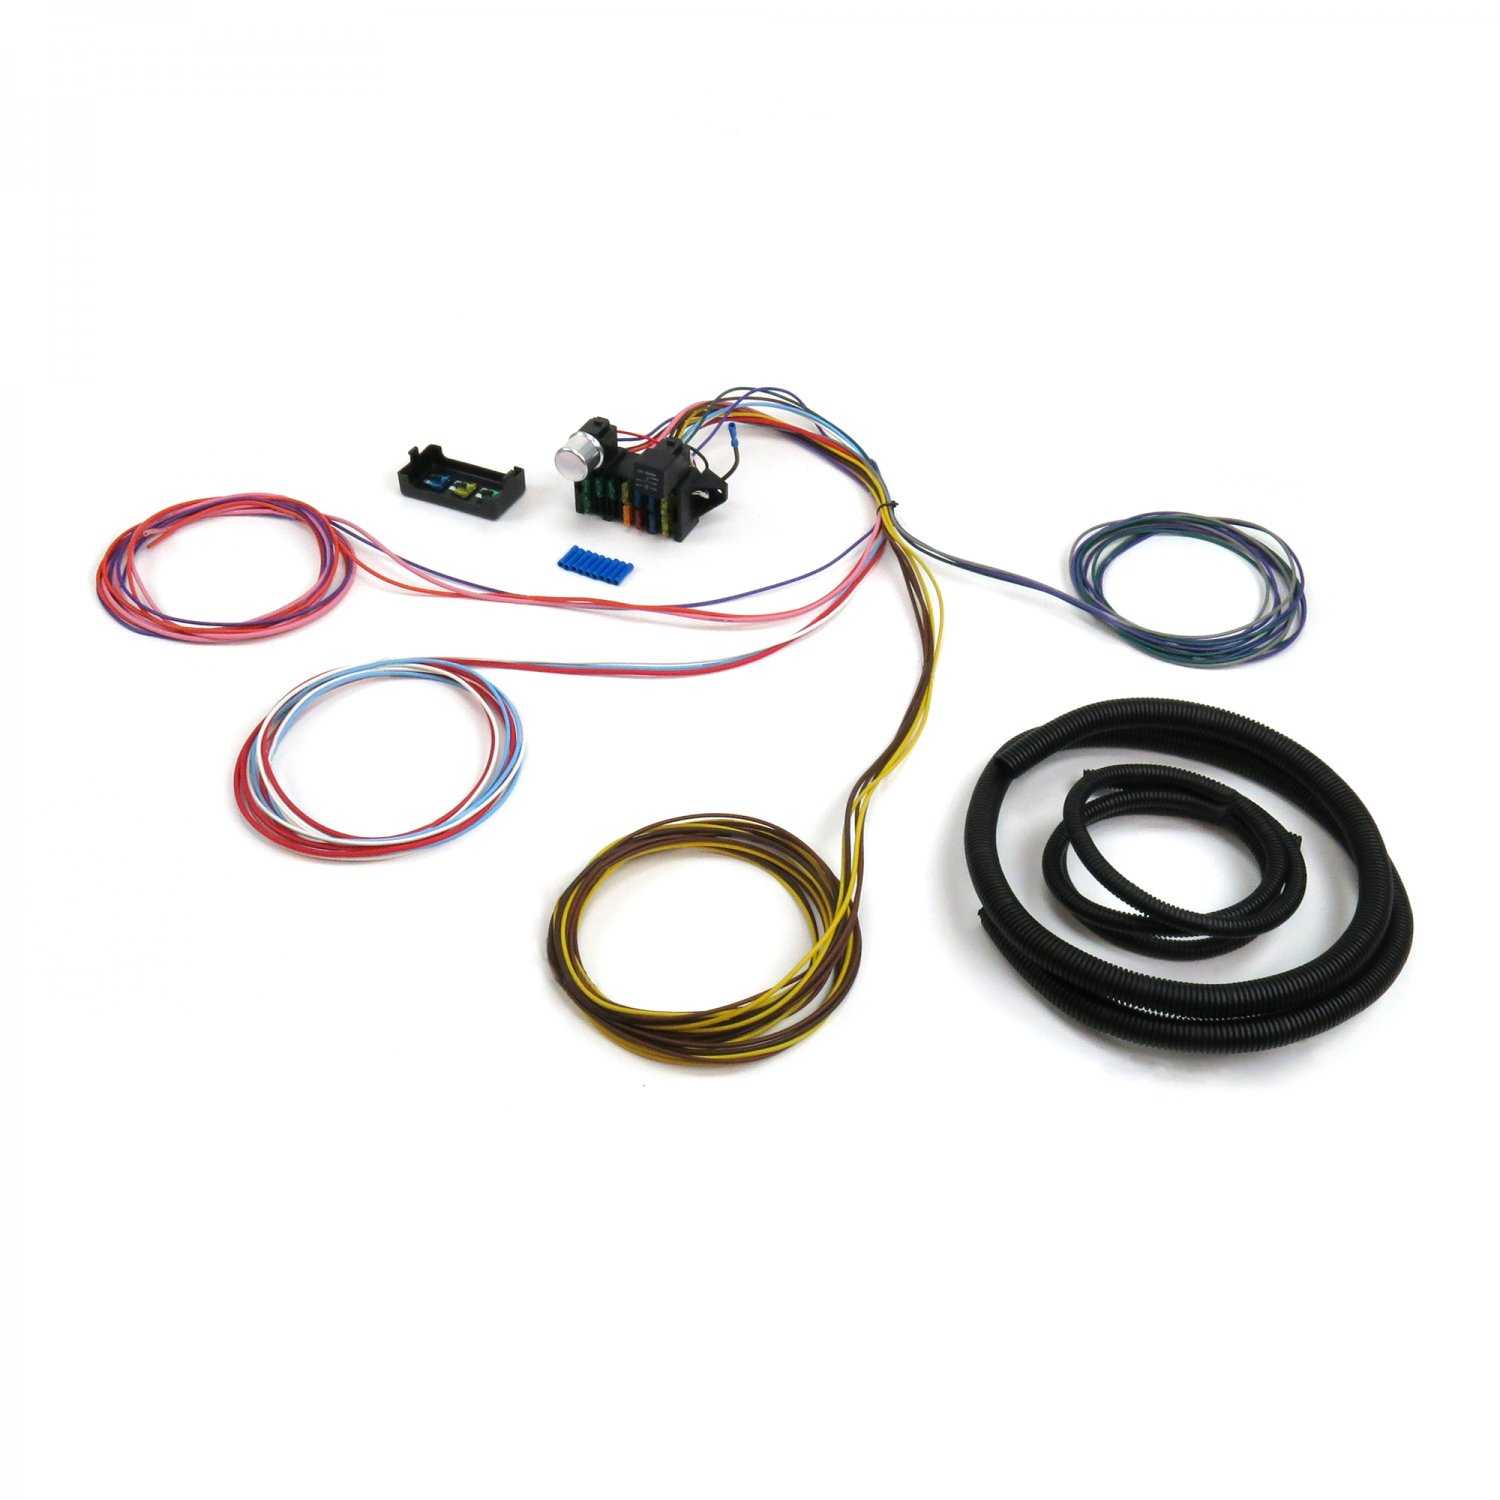 hight resolution of wire harness fuse block upgrade kit for 52 79 mg austin stranded insulation pvc